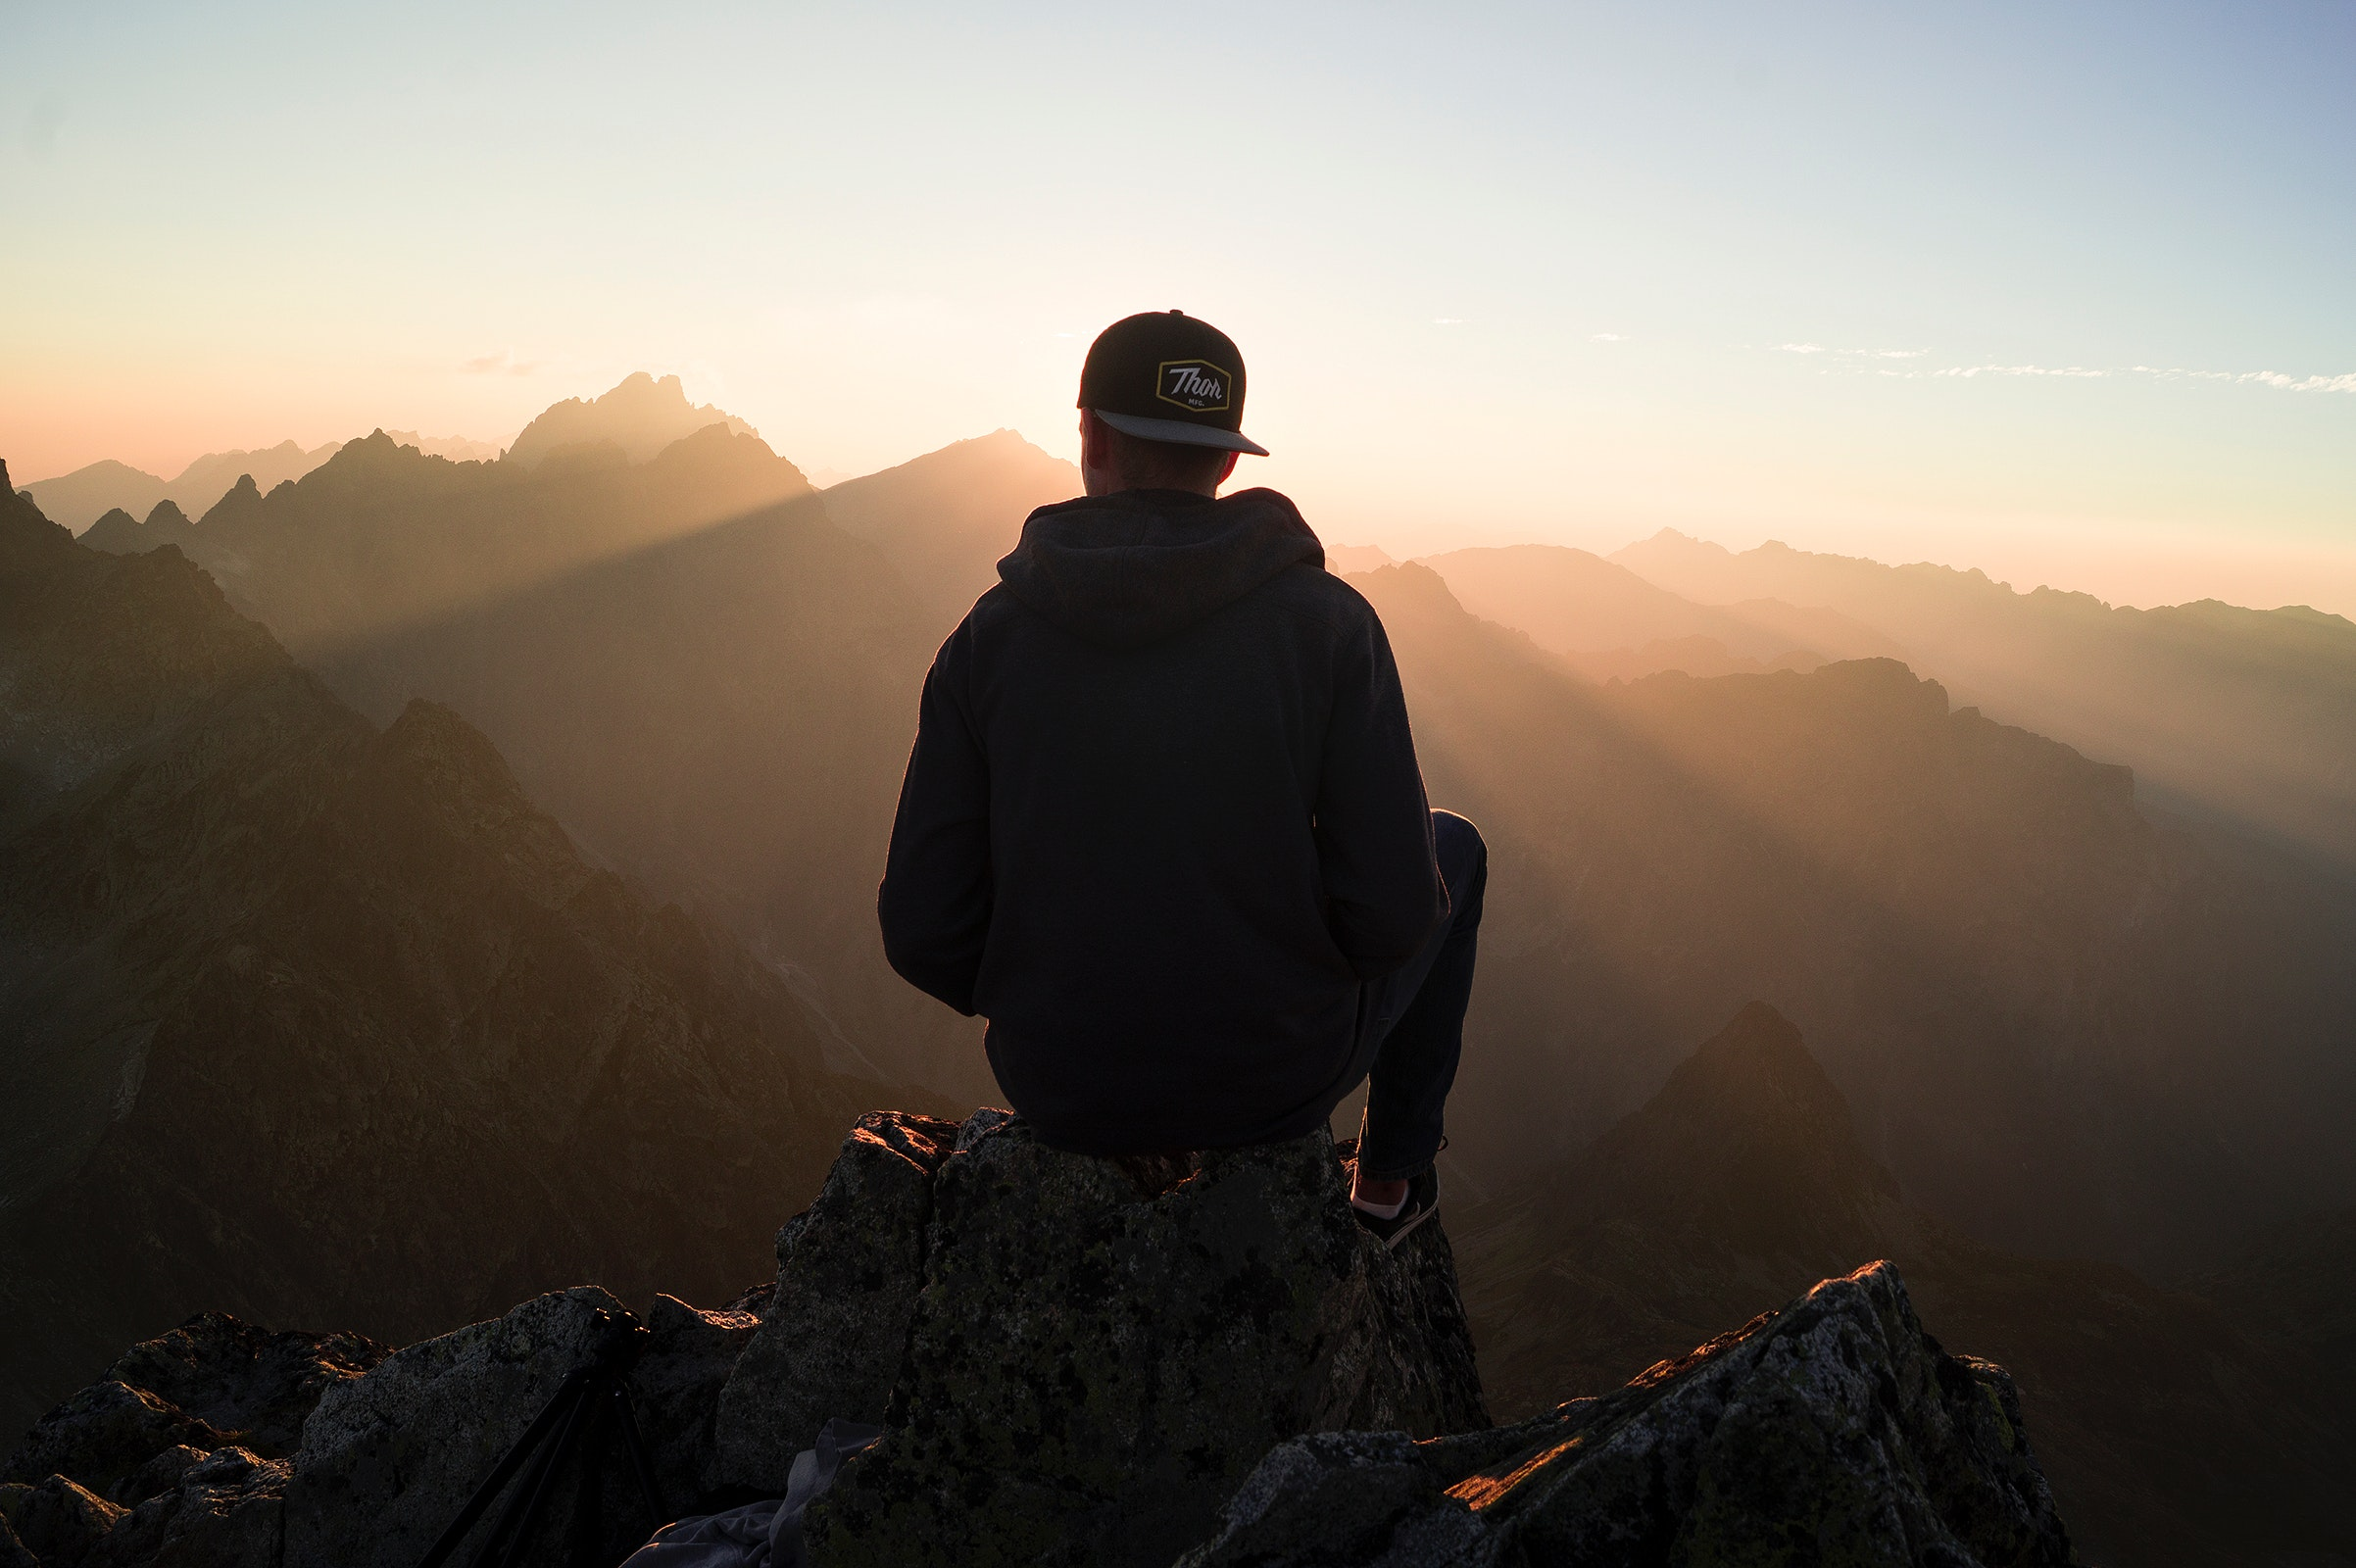 """""""The goal of my life is to help each person grow to full maturity—wholeness in Jesus."""" - -Philip K. Hardin, M.A., MDiv., LMFT, LPC"""